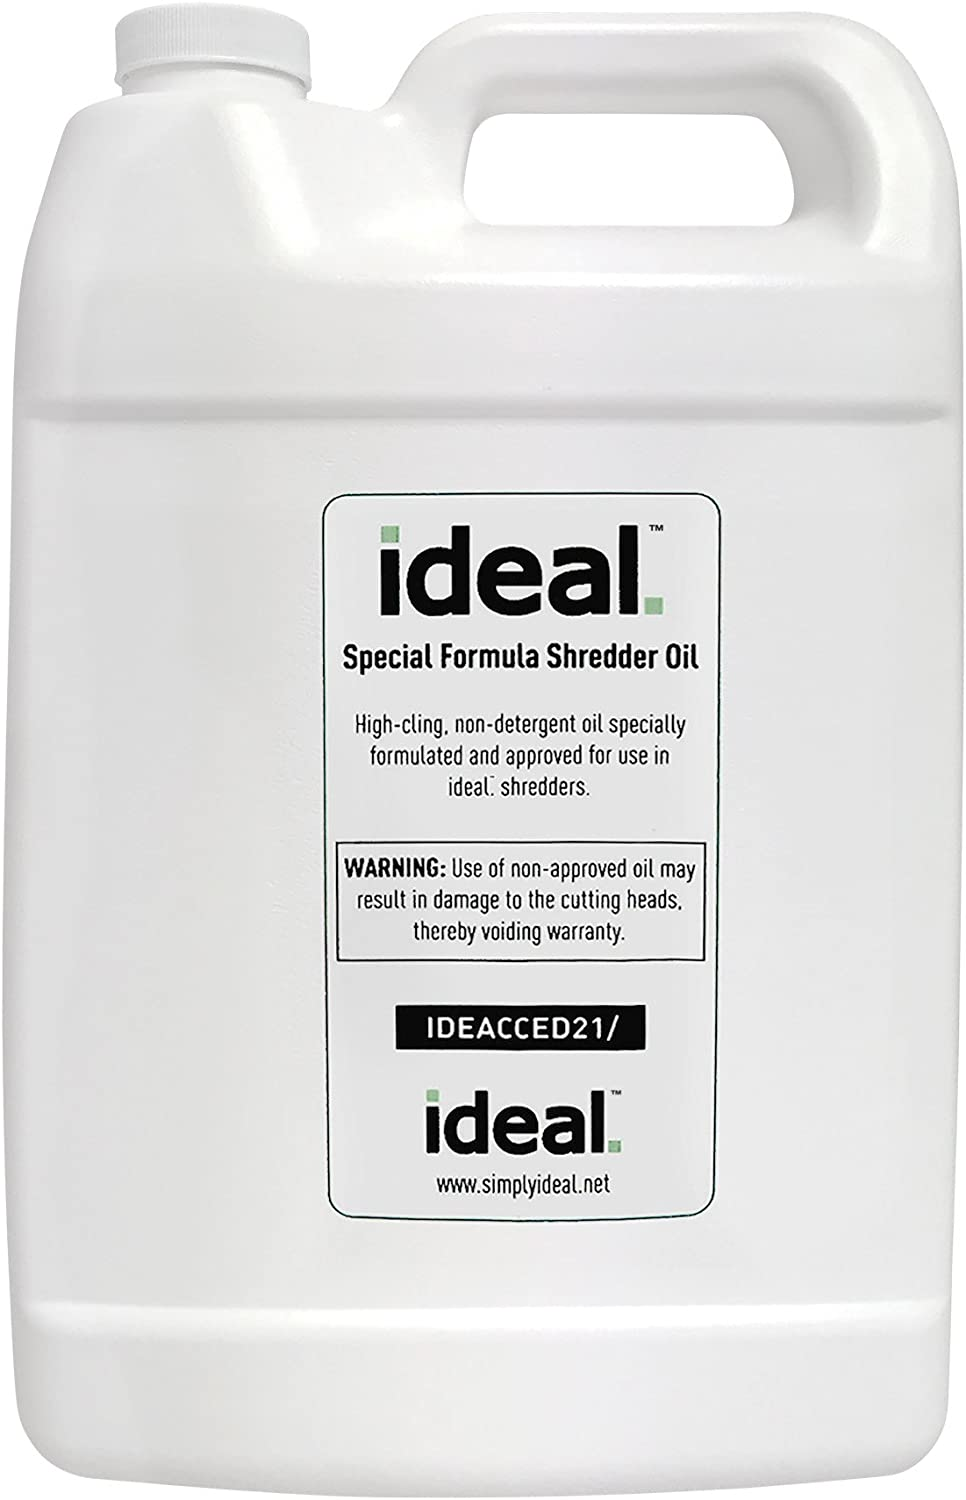 Special High-Cling Lubricating 価格 交渉 送料無料 Oil for Shredders: ideal. SALENEW大人気 1 Gallo